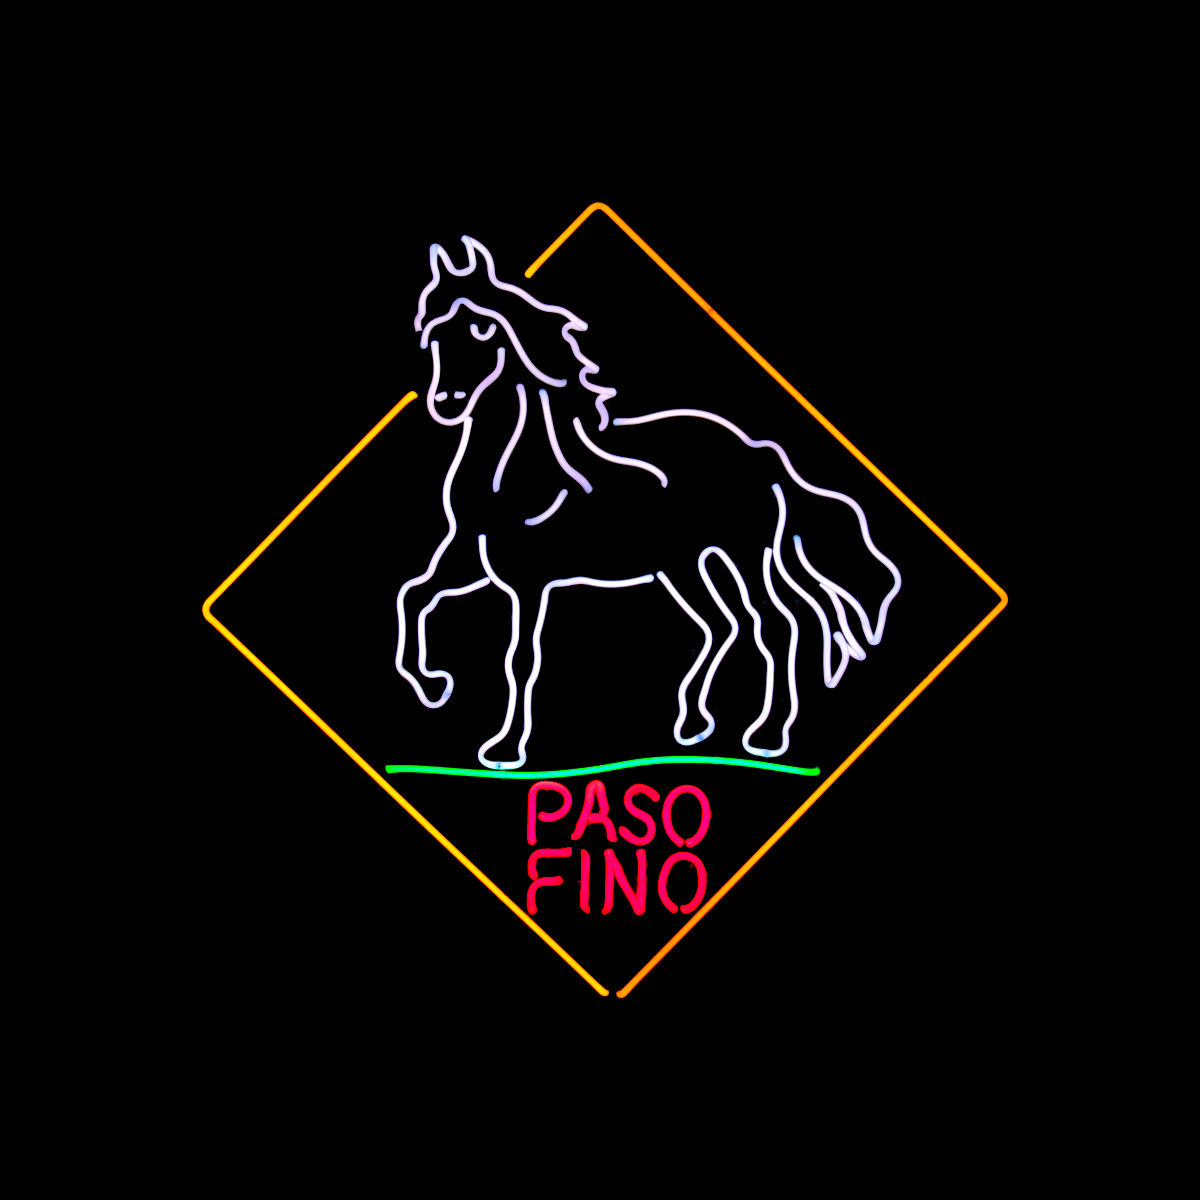 PASO FINO HORSE NEON LIGHT SCULPTURES by John Barton - BartonNeonMagic.com